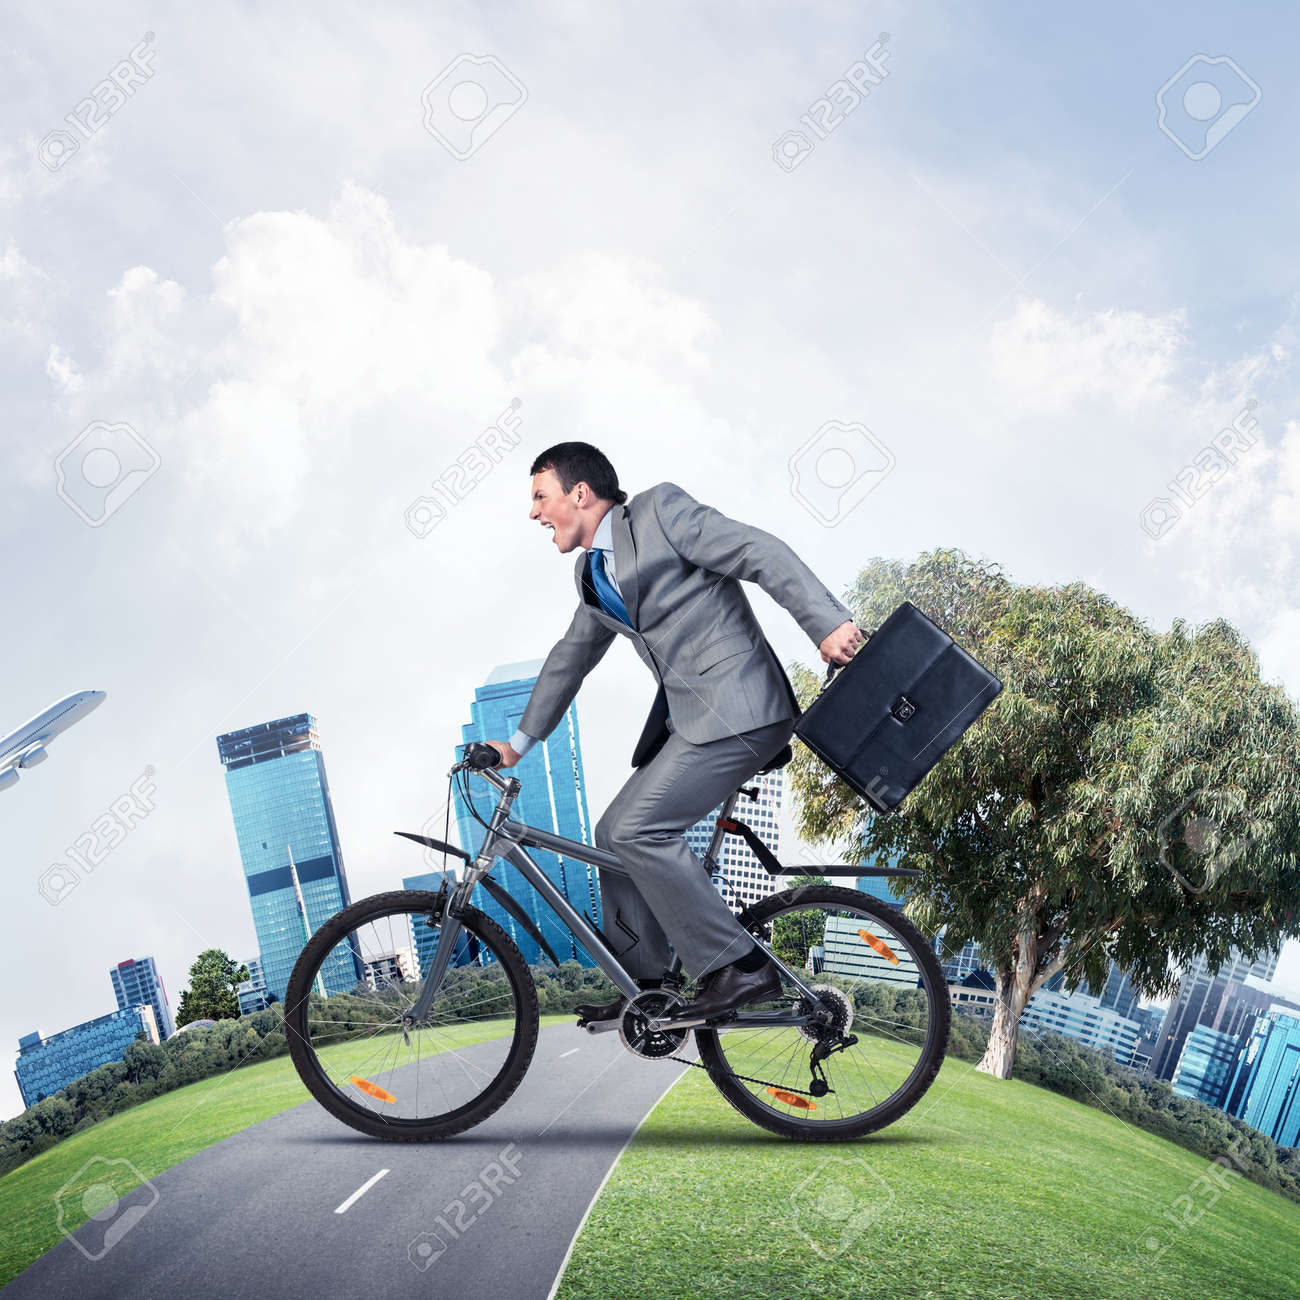 Young Man Riding Bicycle On Road Businessman On Bike Hurry To